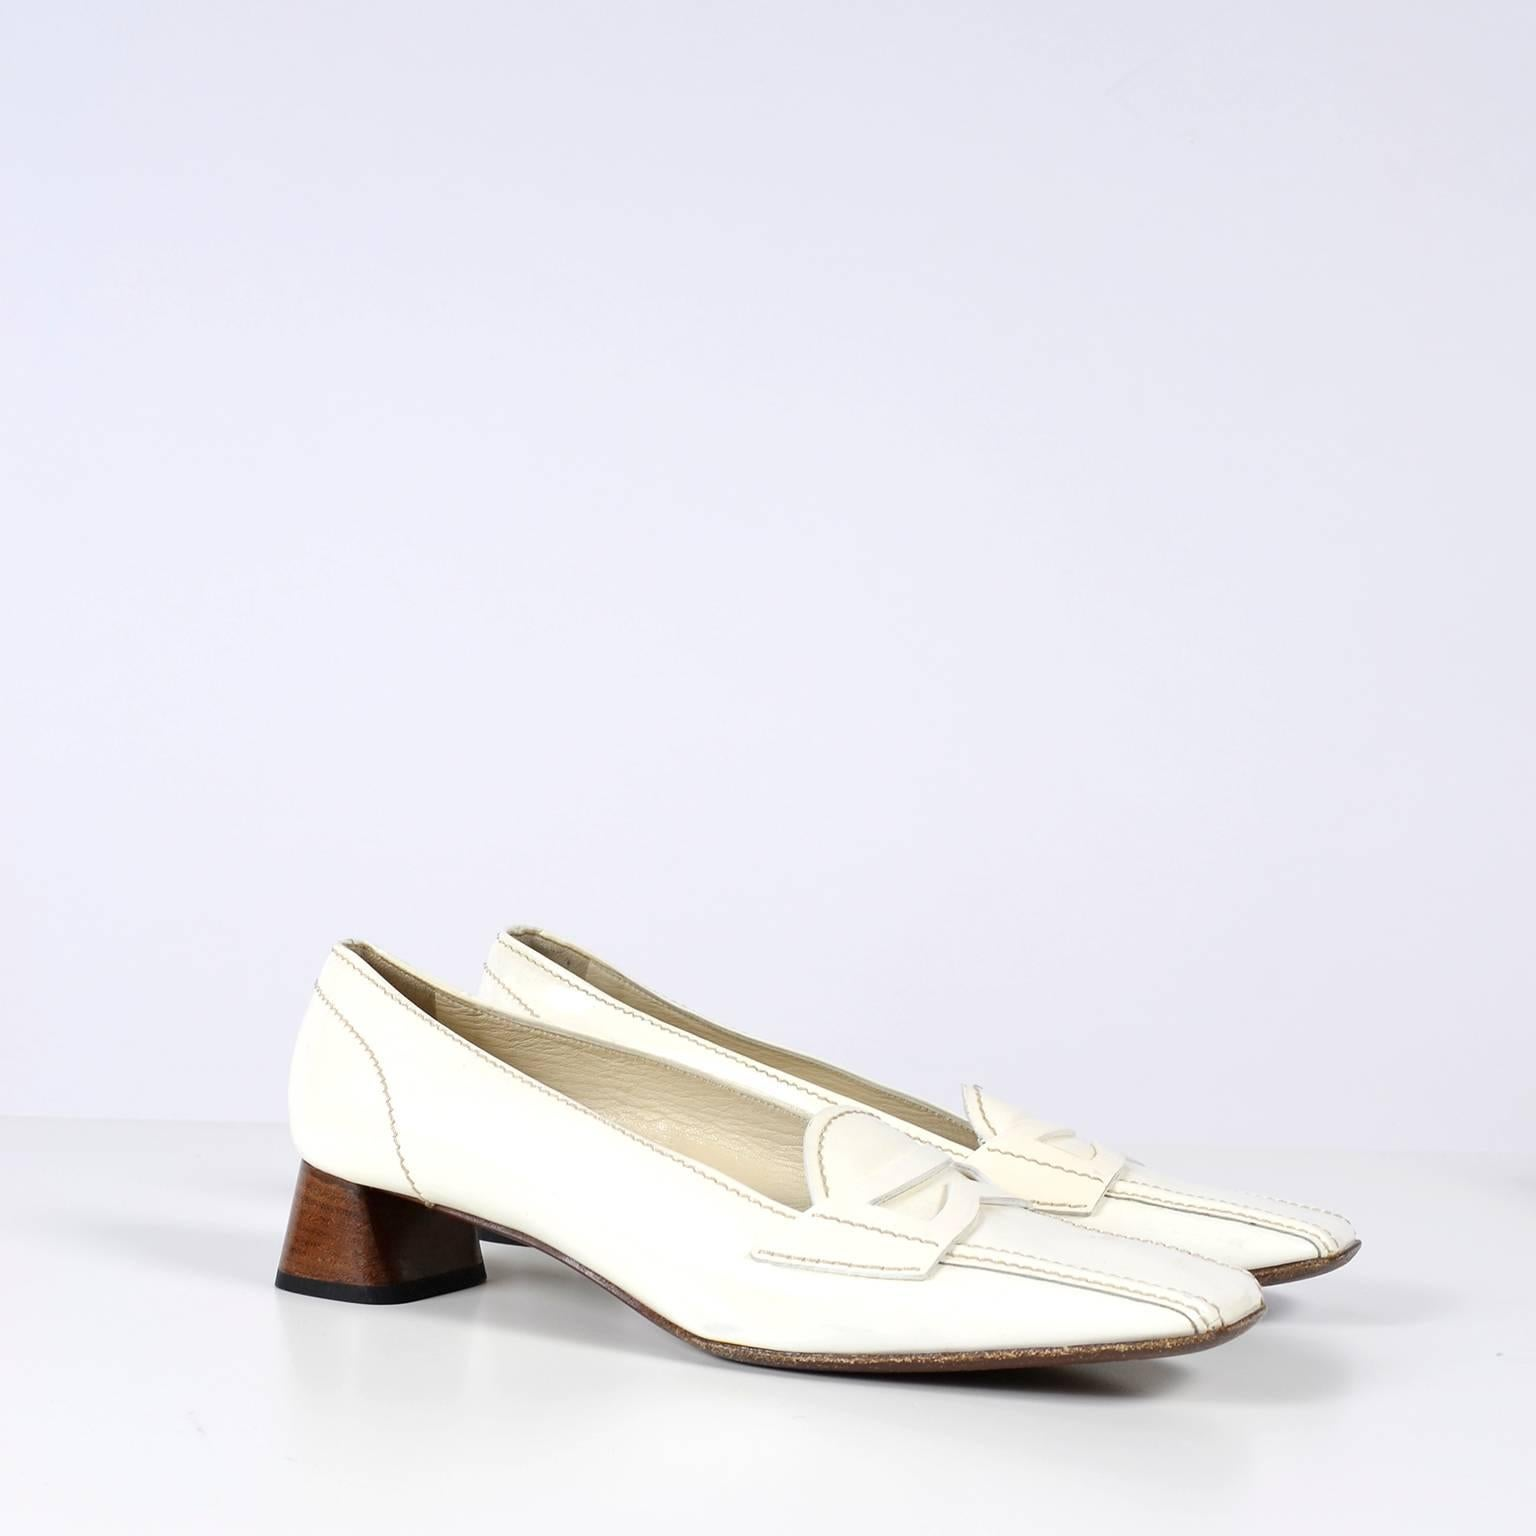 3d040947c6b2 Vintage Prada Shoes W/ Square Toes and Block Heels in Ivory Patent Leather  For Sale at 1stdibs